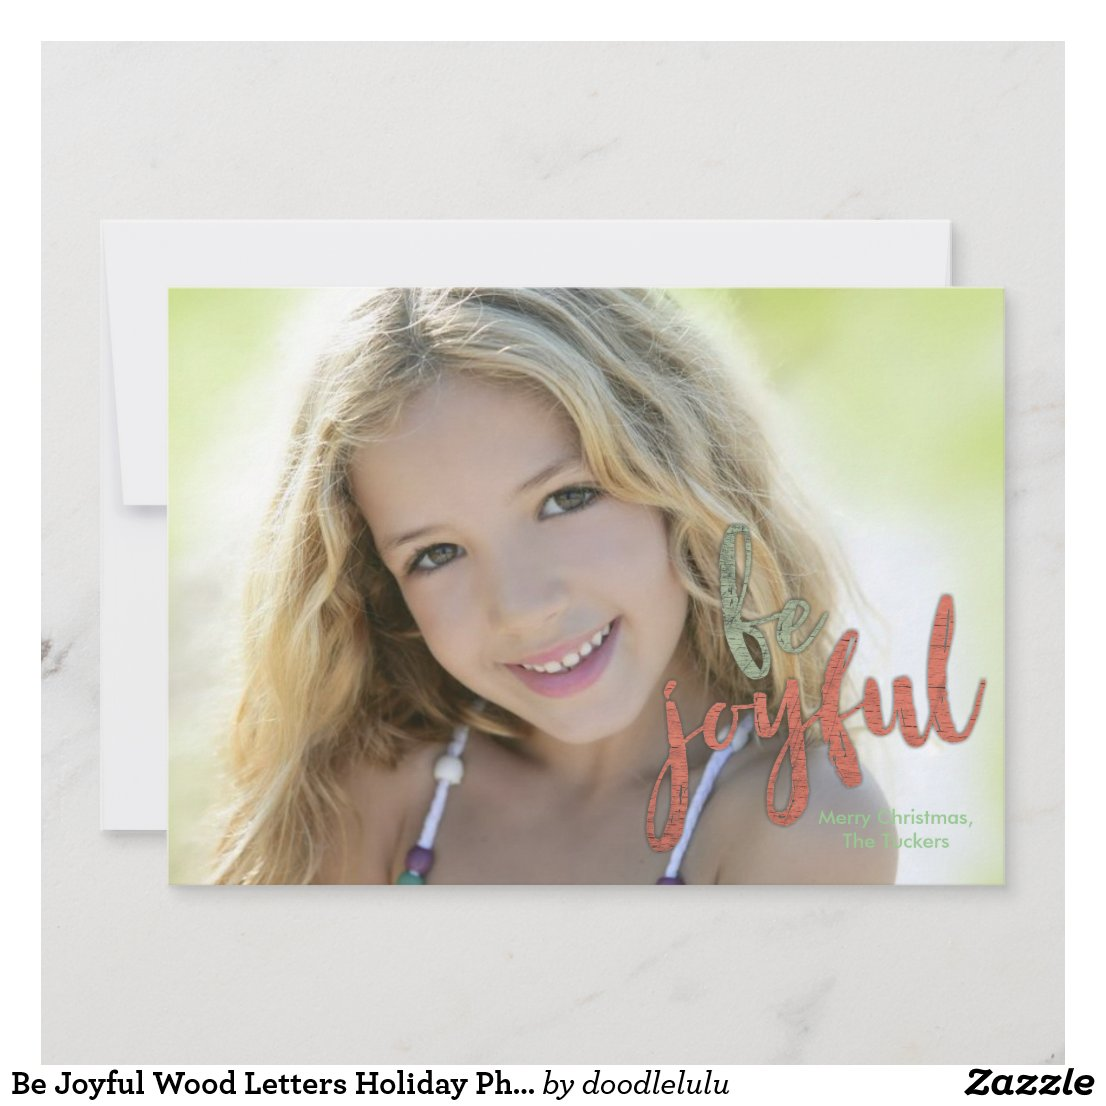 Be Joyful Wood Letters Holiday Photo Card